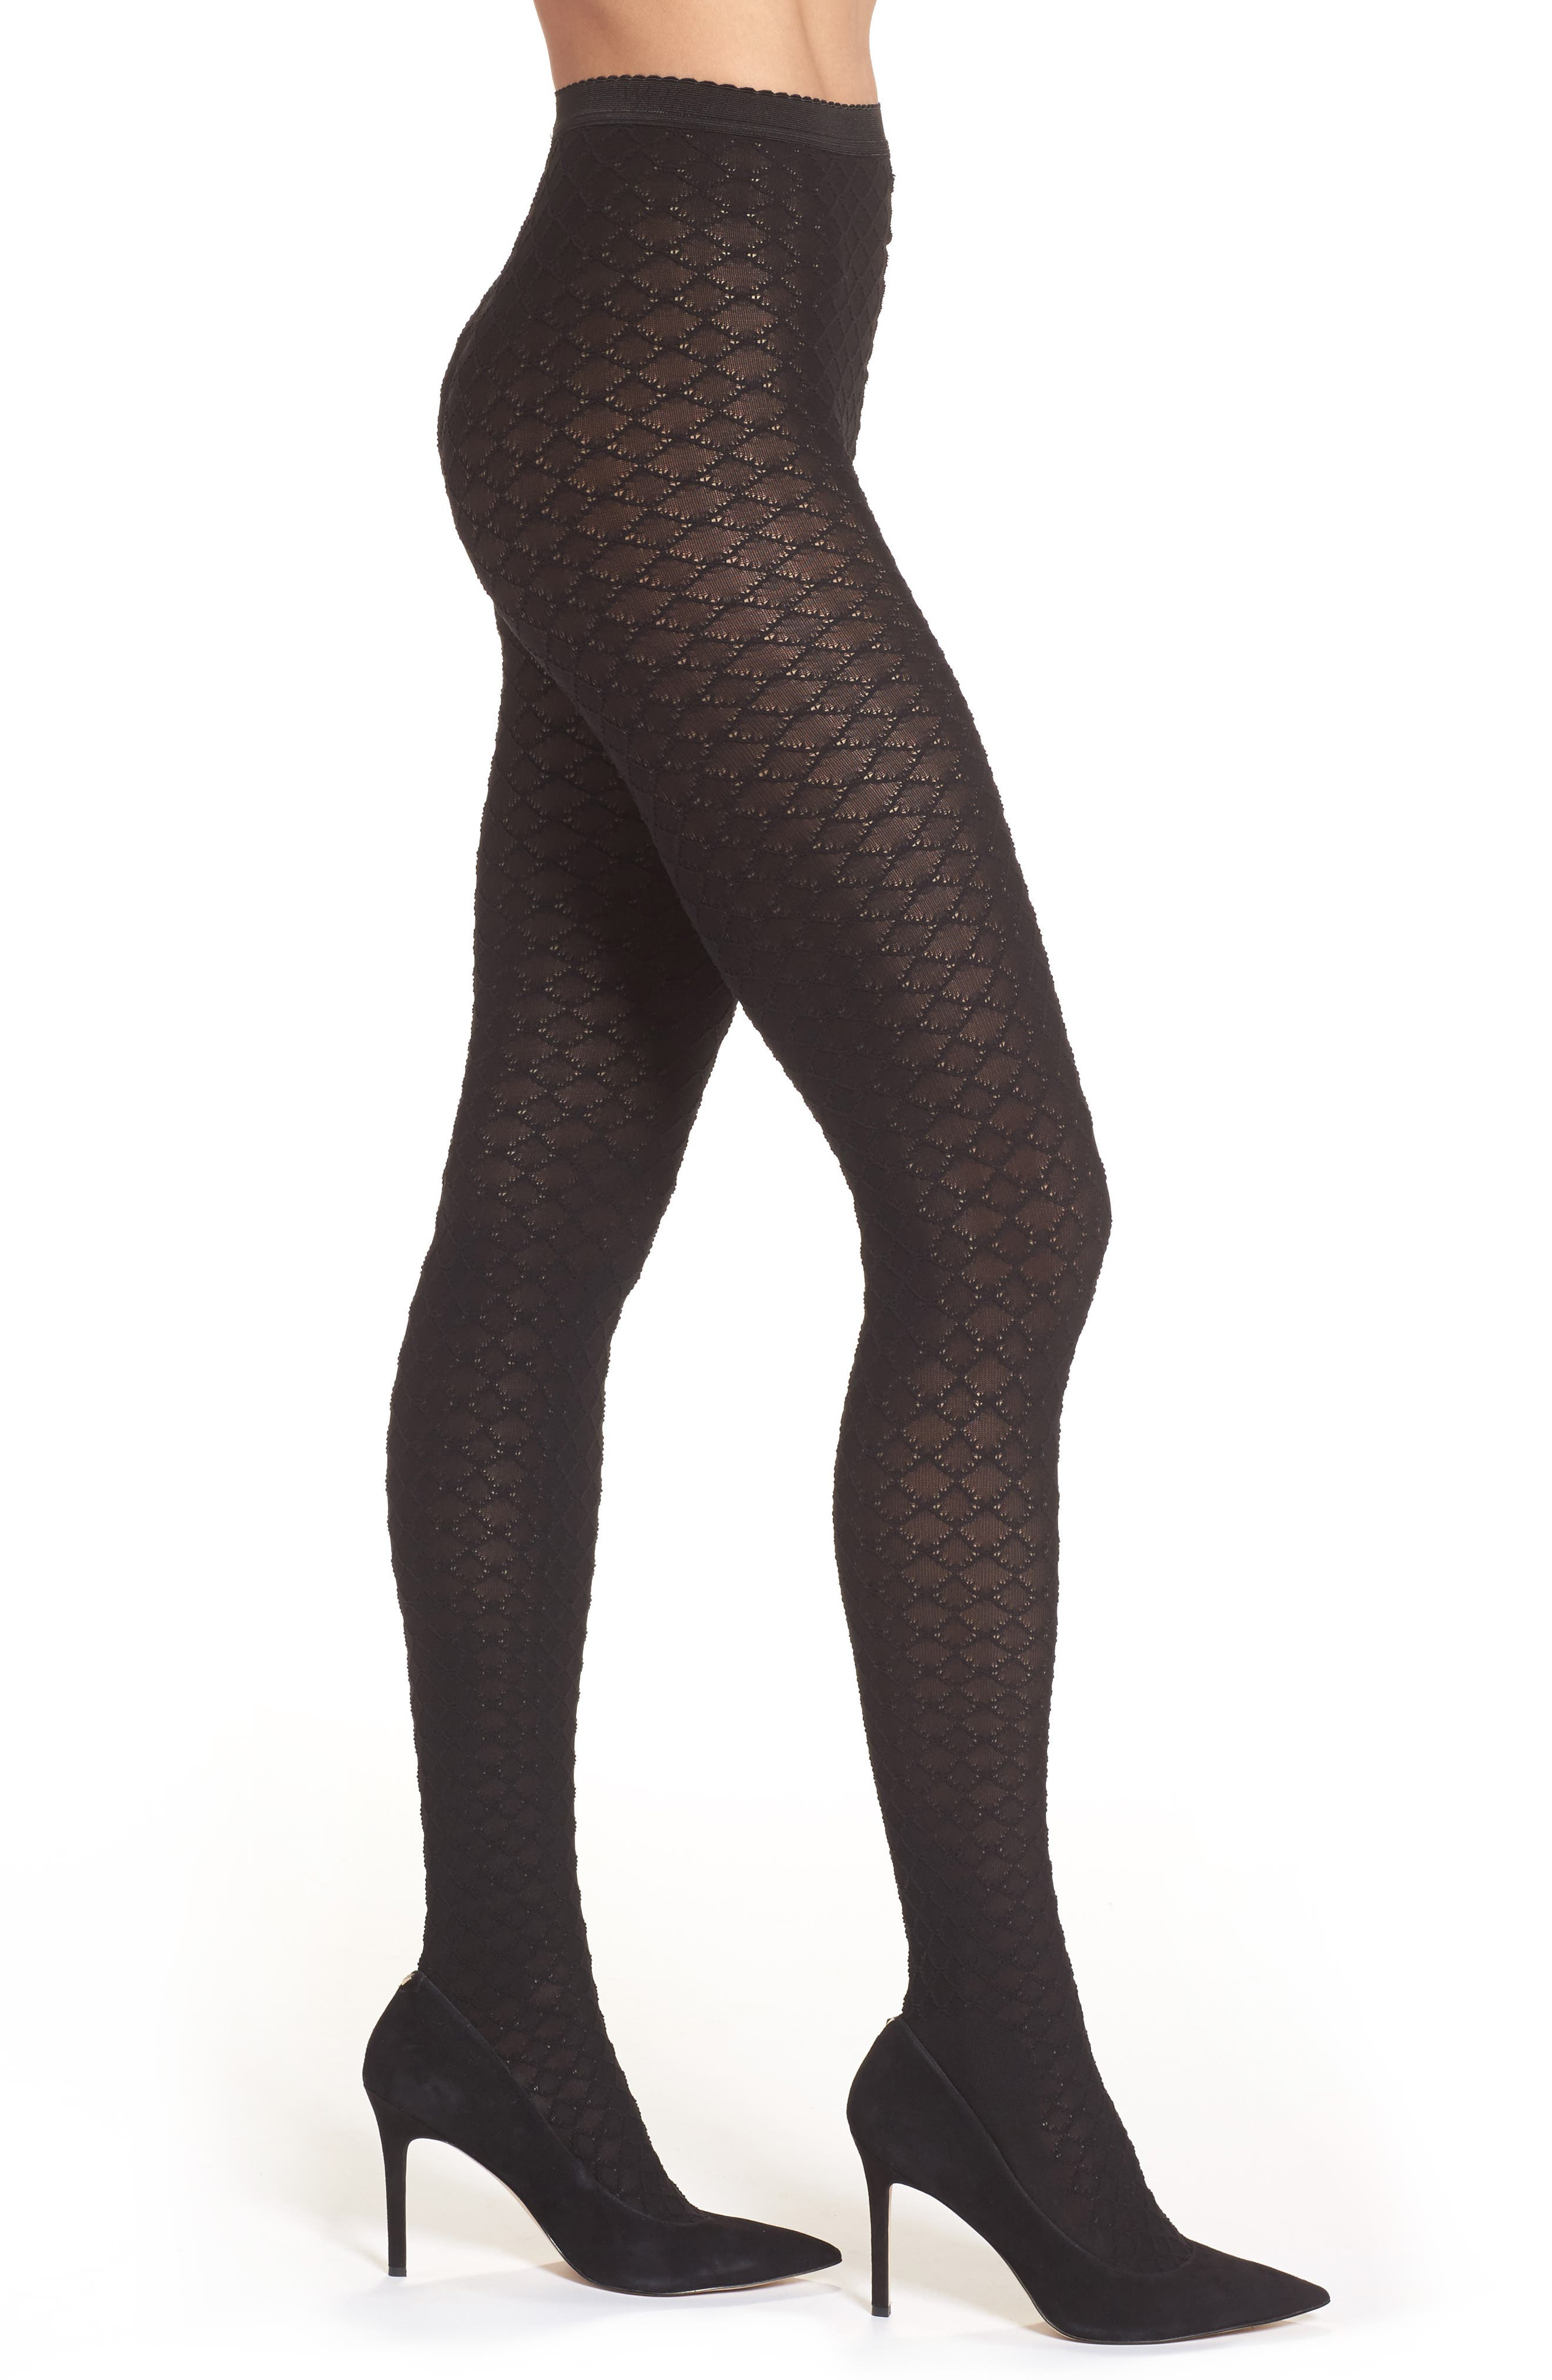 Kaleido Tights,                         Main,                         color, 002